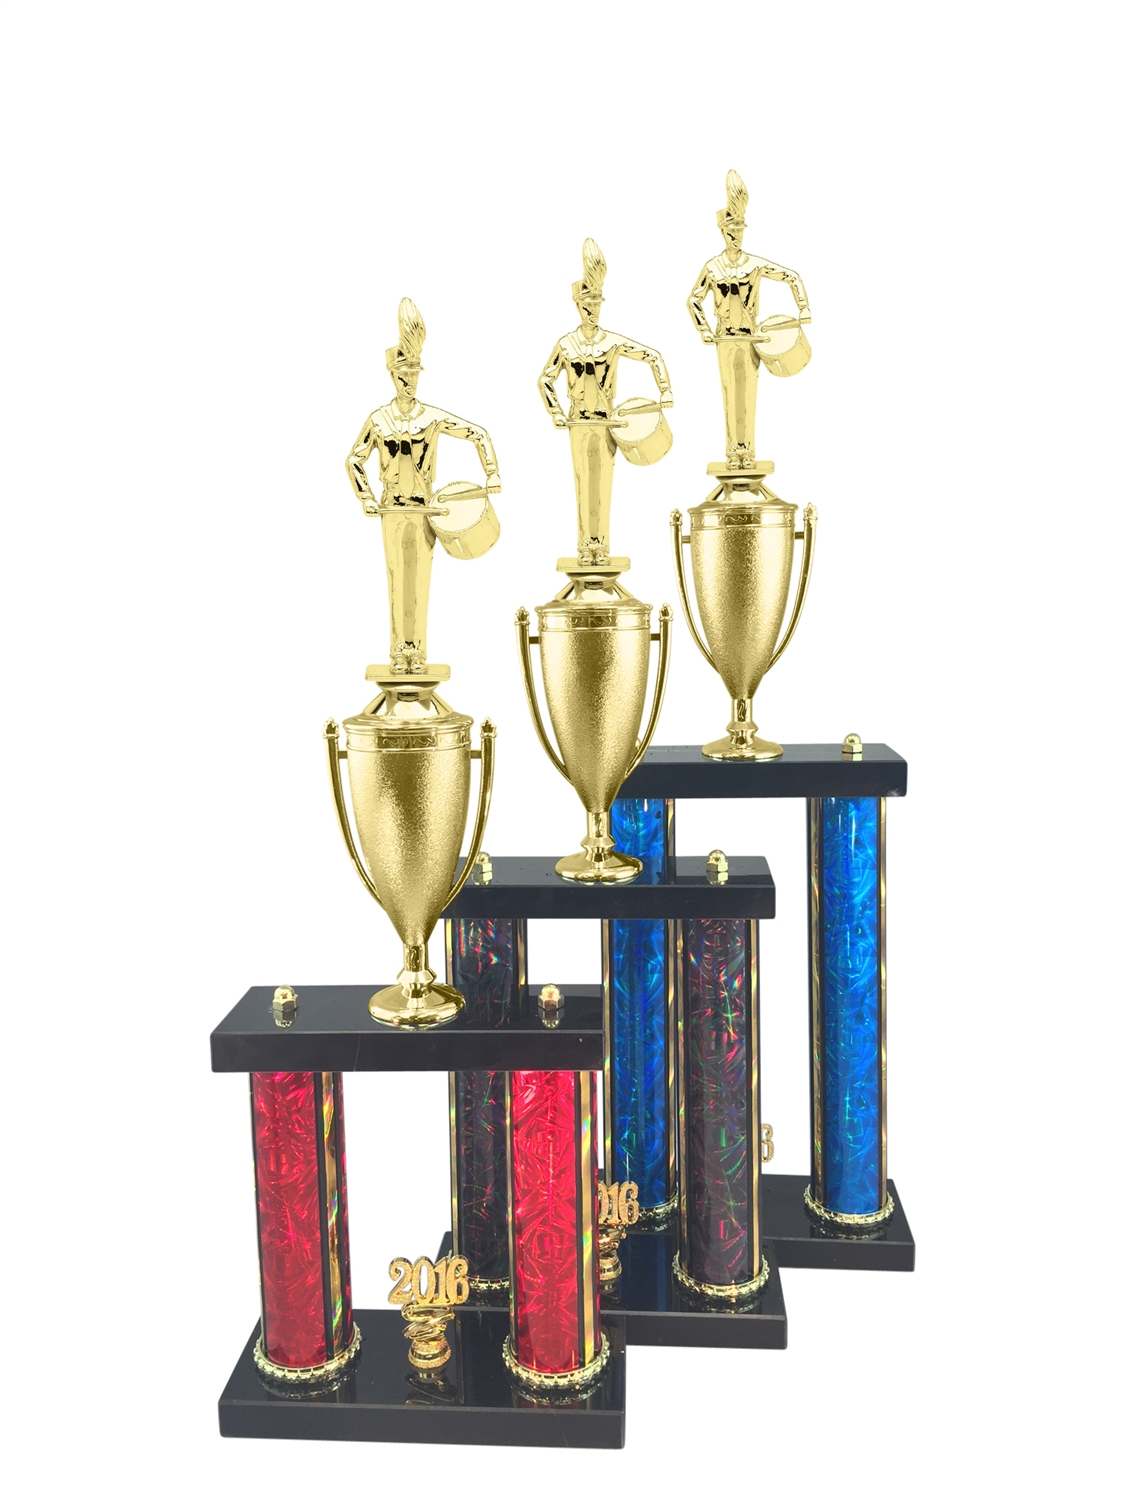 Band Drummer Trophy Available in 11 Color & 3 Size Options